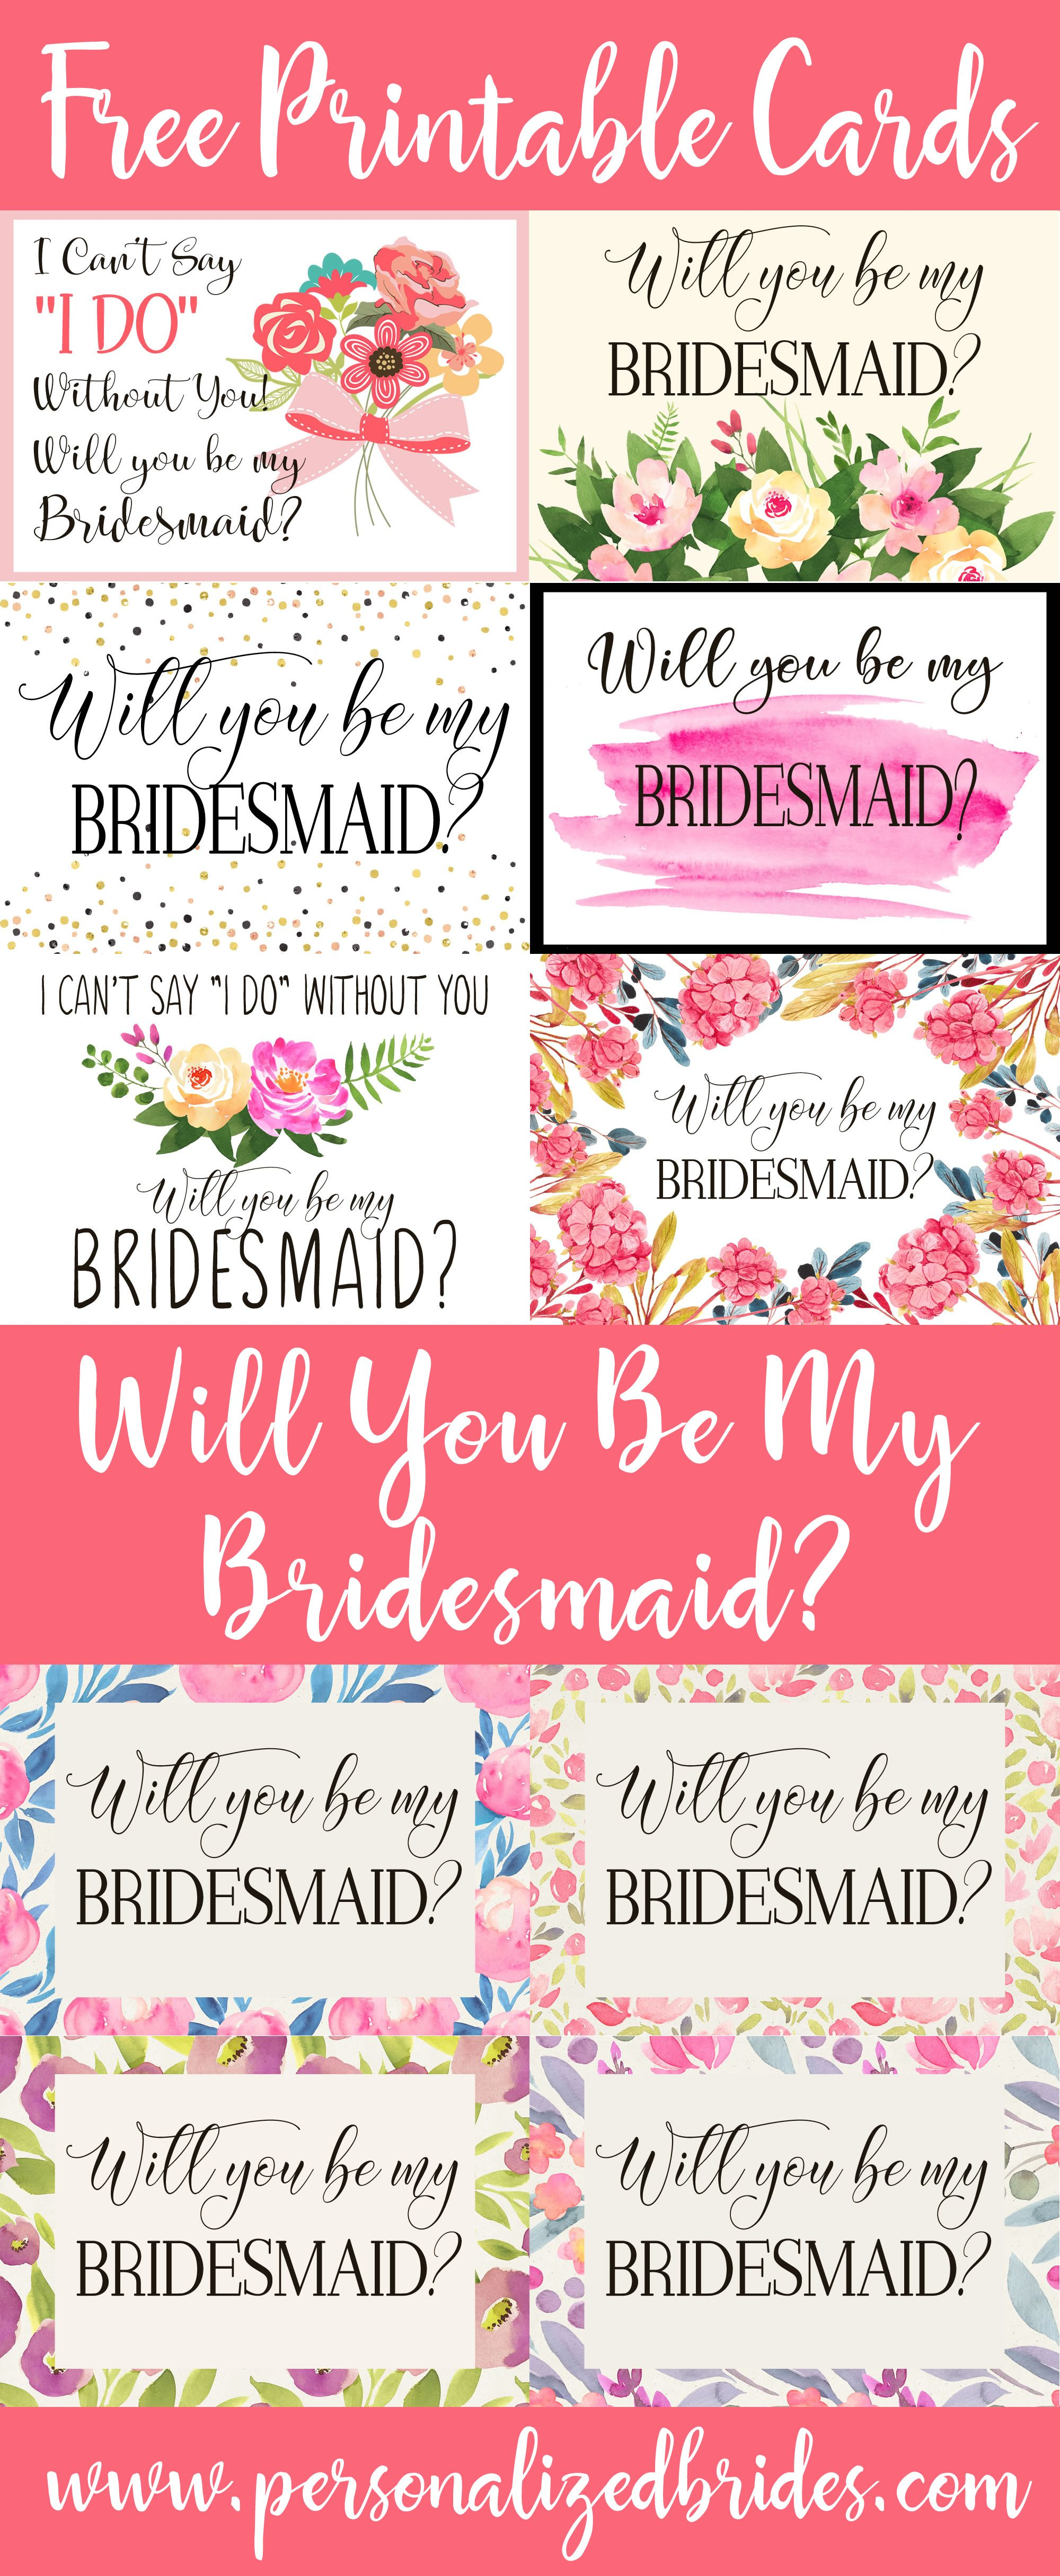 image regarding I Can't Say I Do Without You Free Printable named Absolutely free Printable \